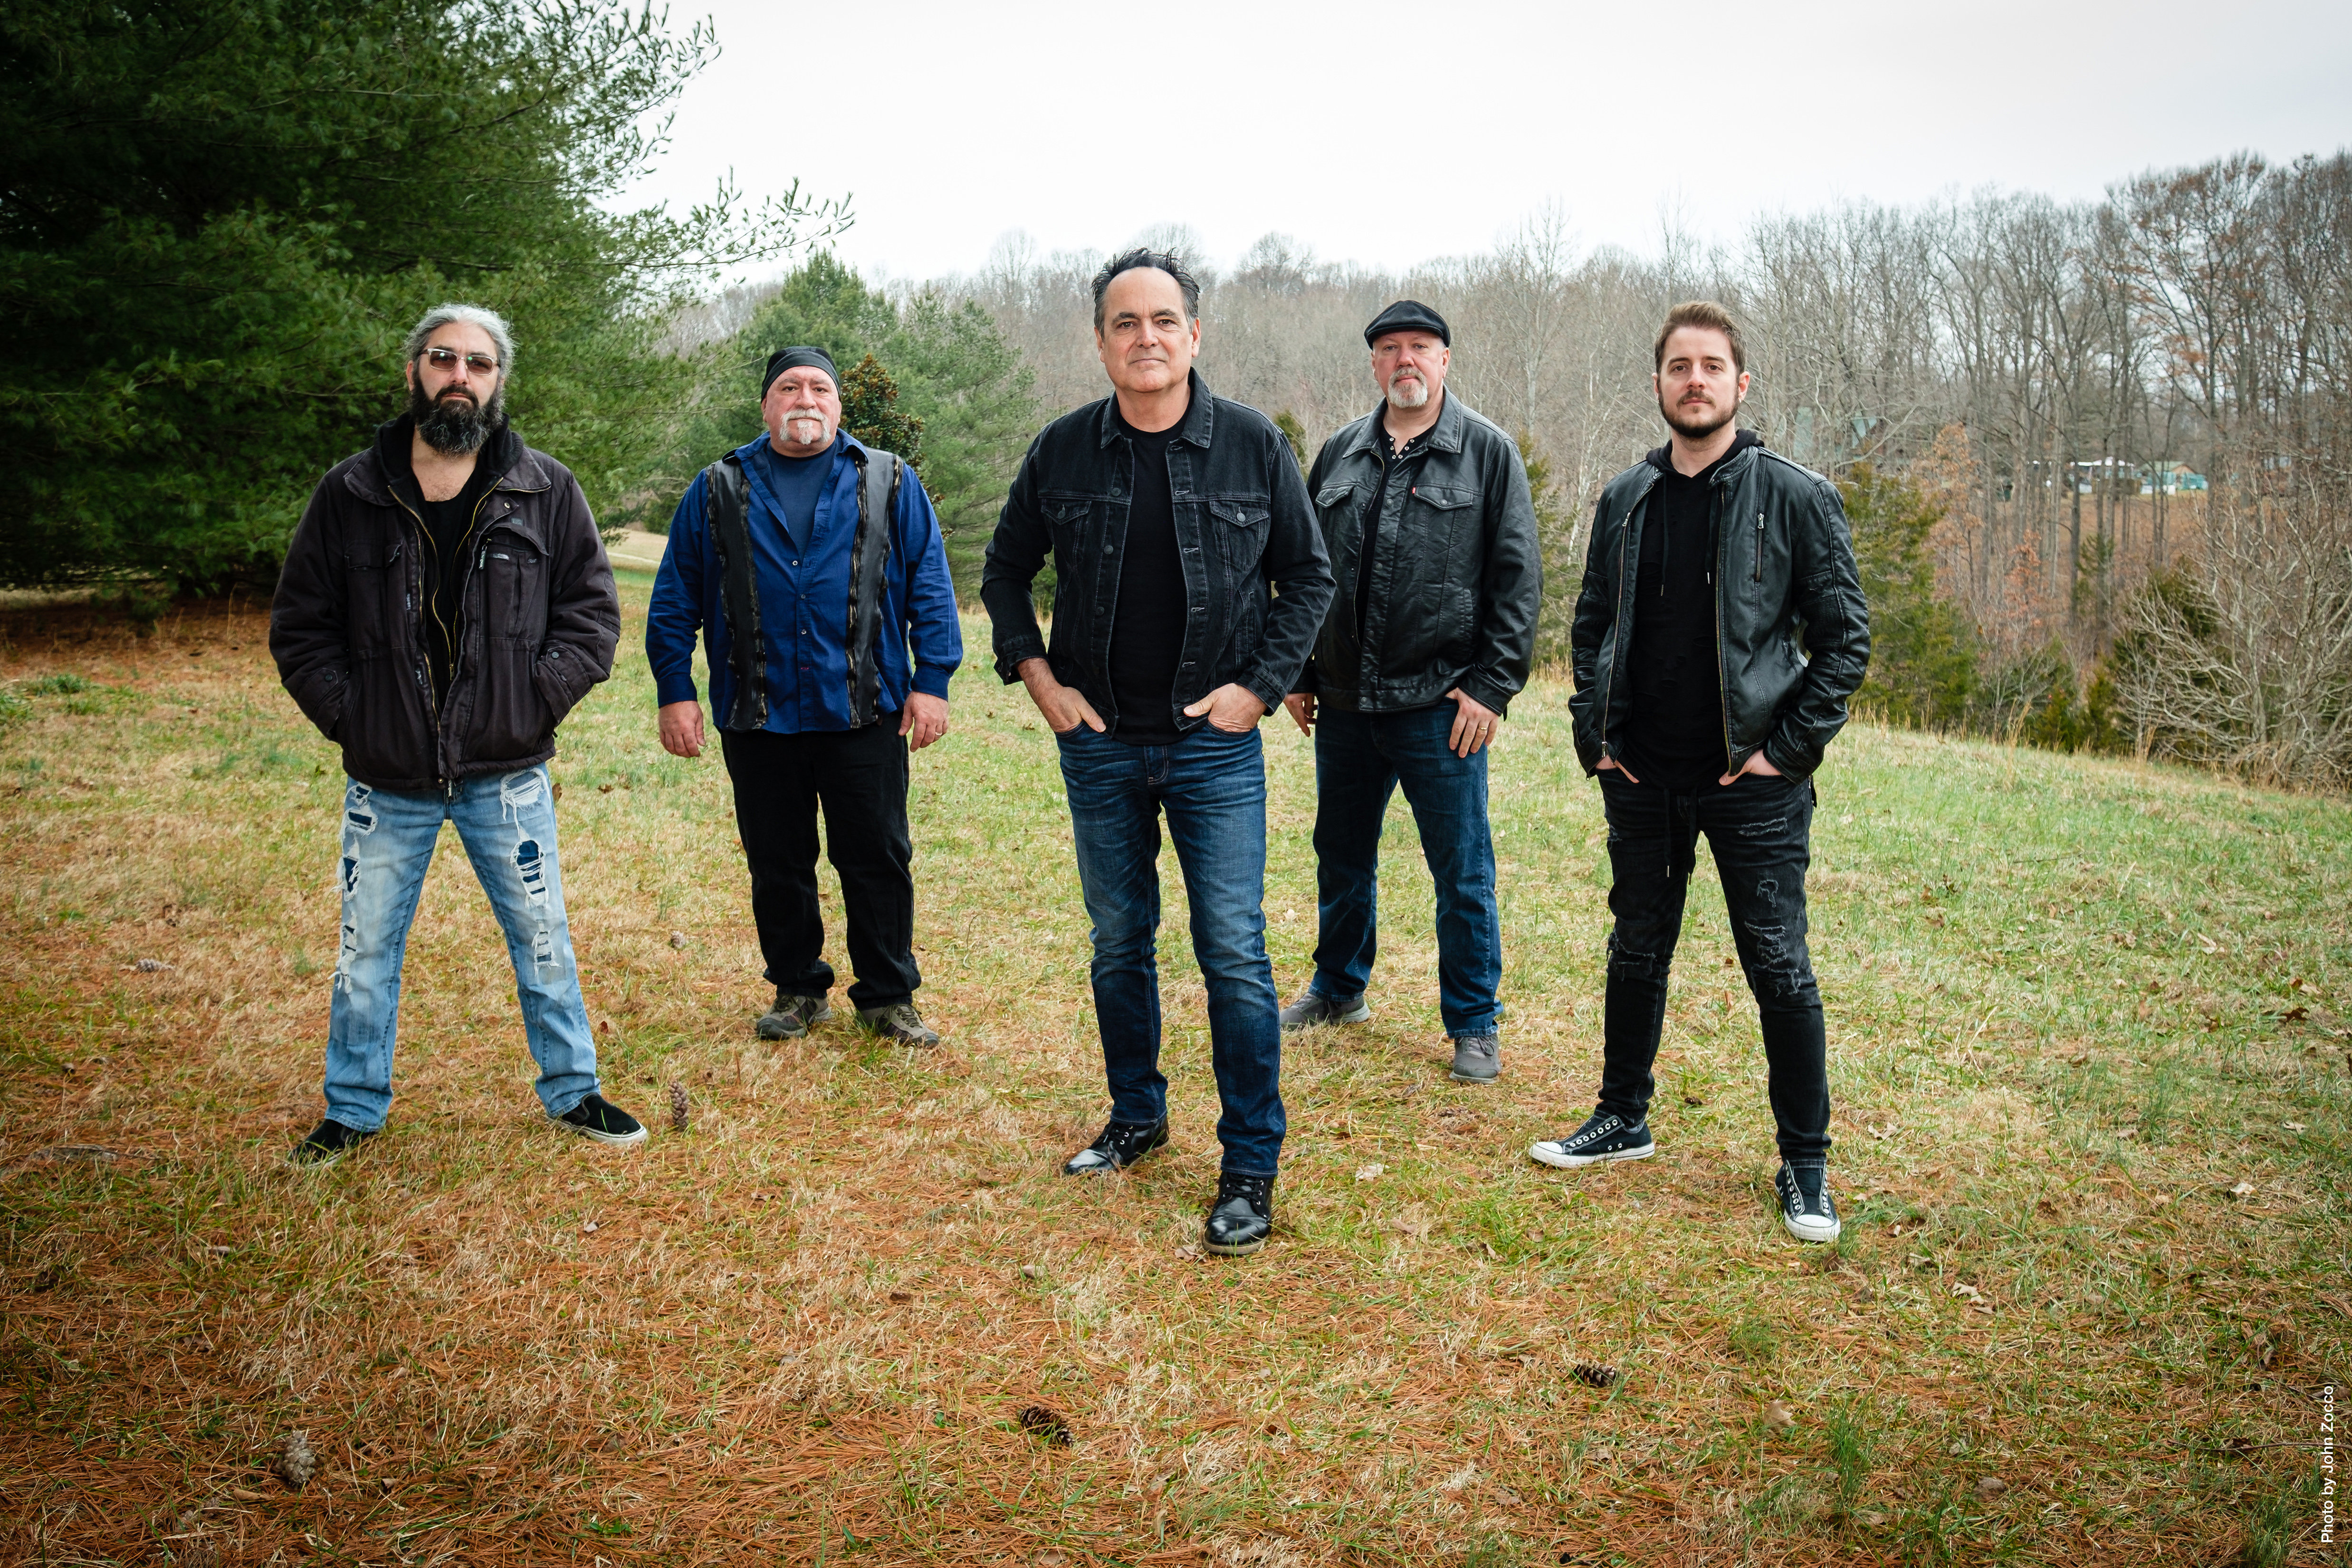 Neal Morse Band play with Innocence And Danger